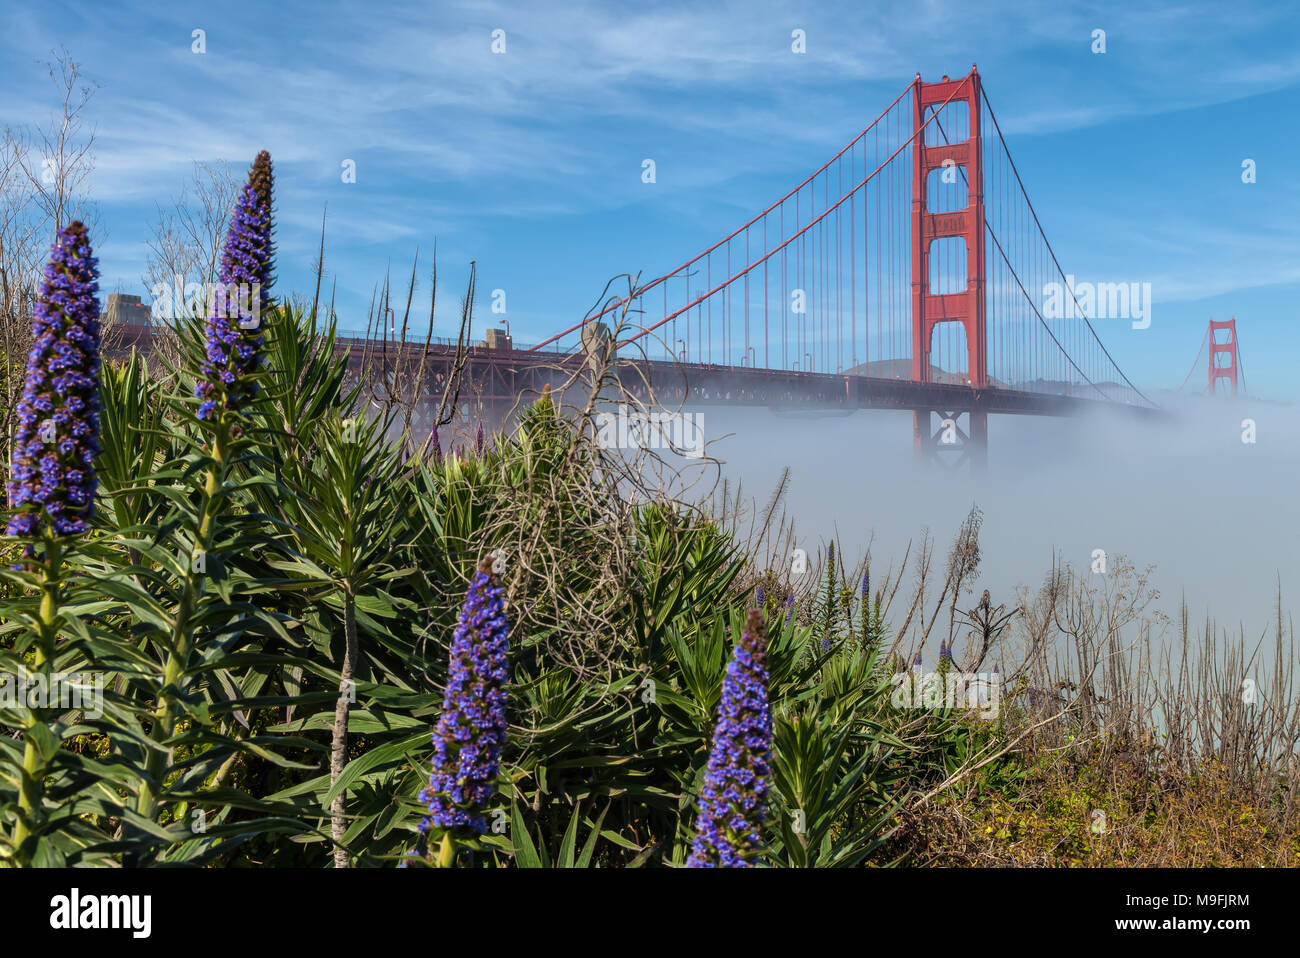 The iconic Golden Gate Bridge, with low fog under the bridge, on an early spring morning, San Francisco, California, United States. - Stock Image